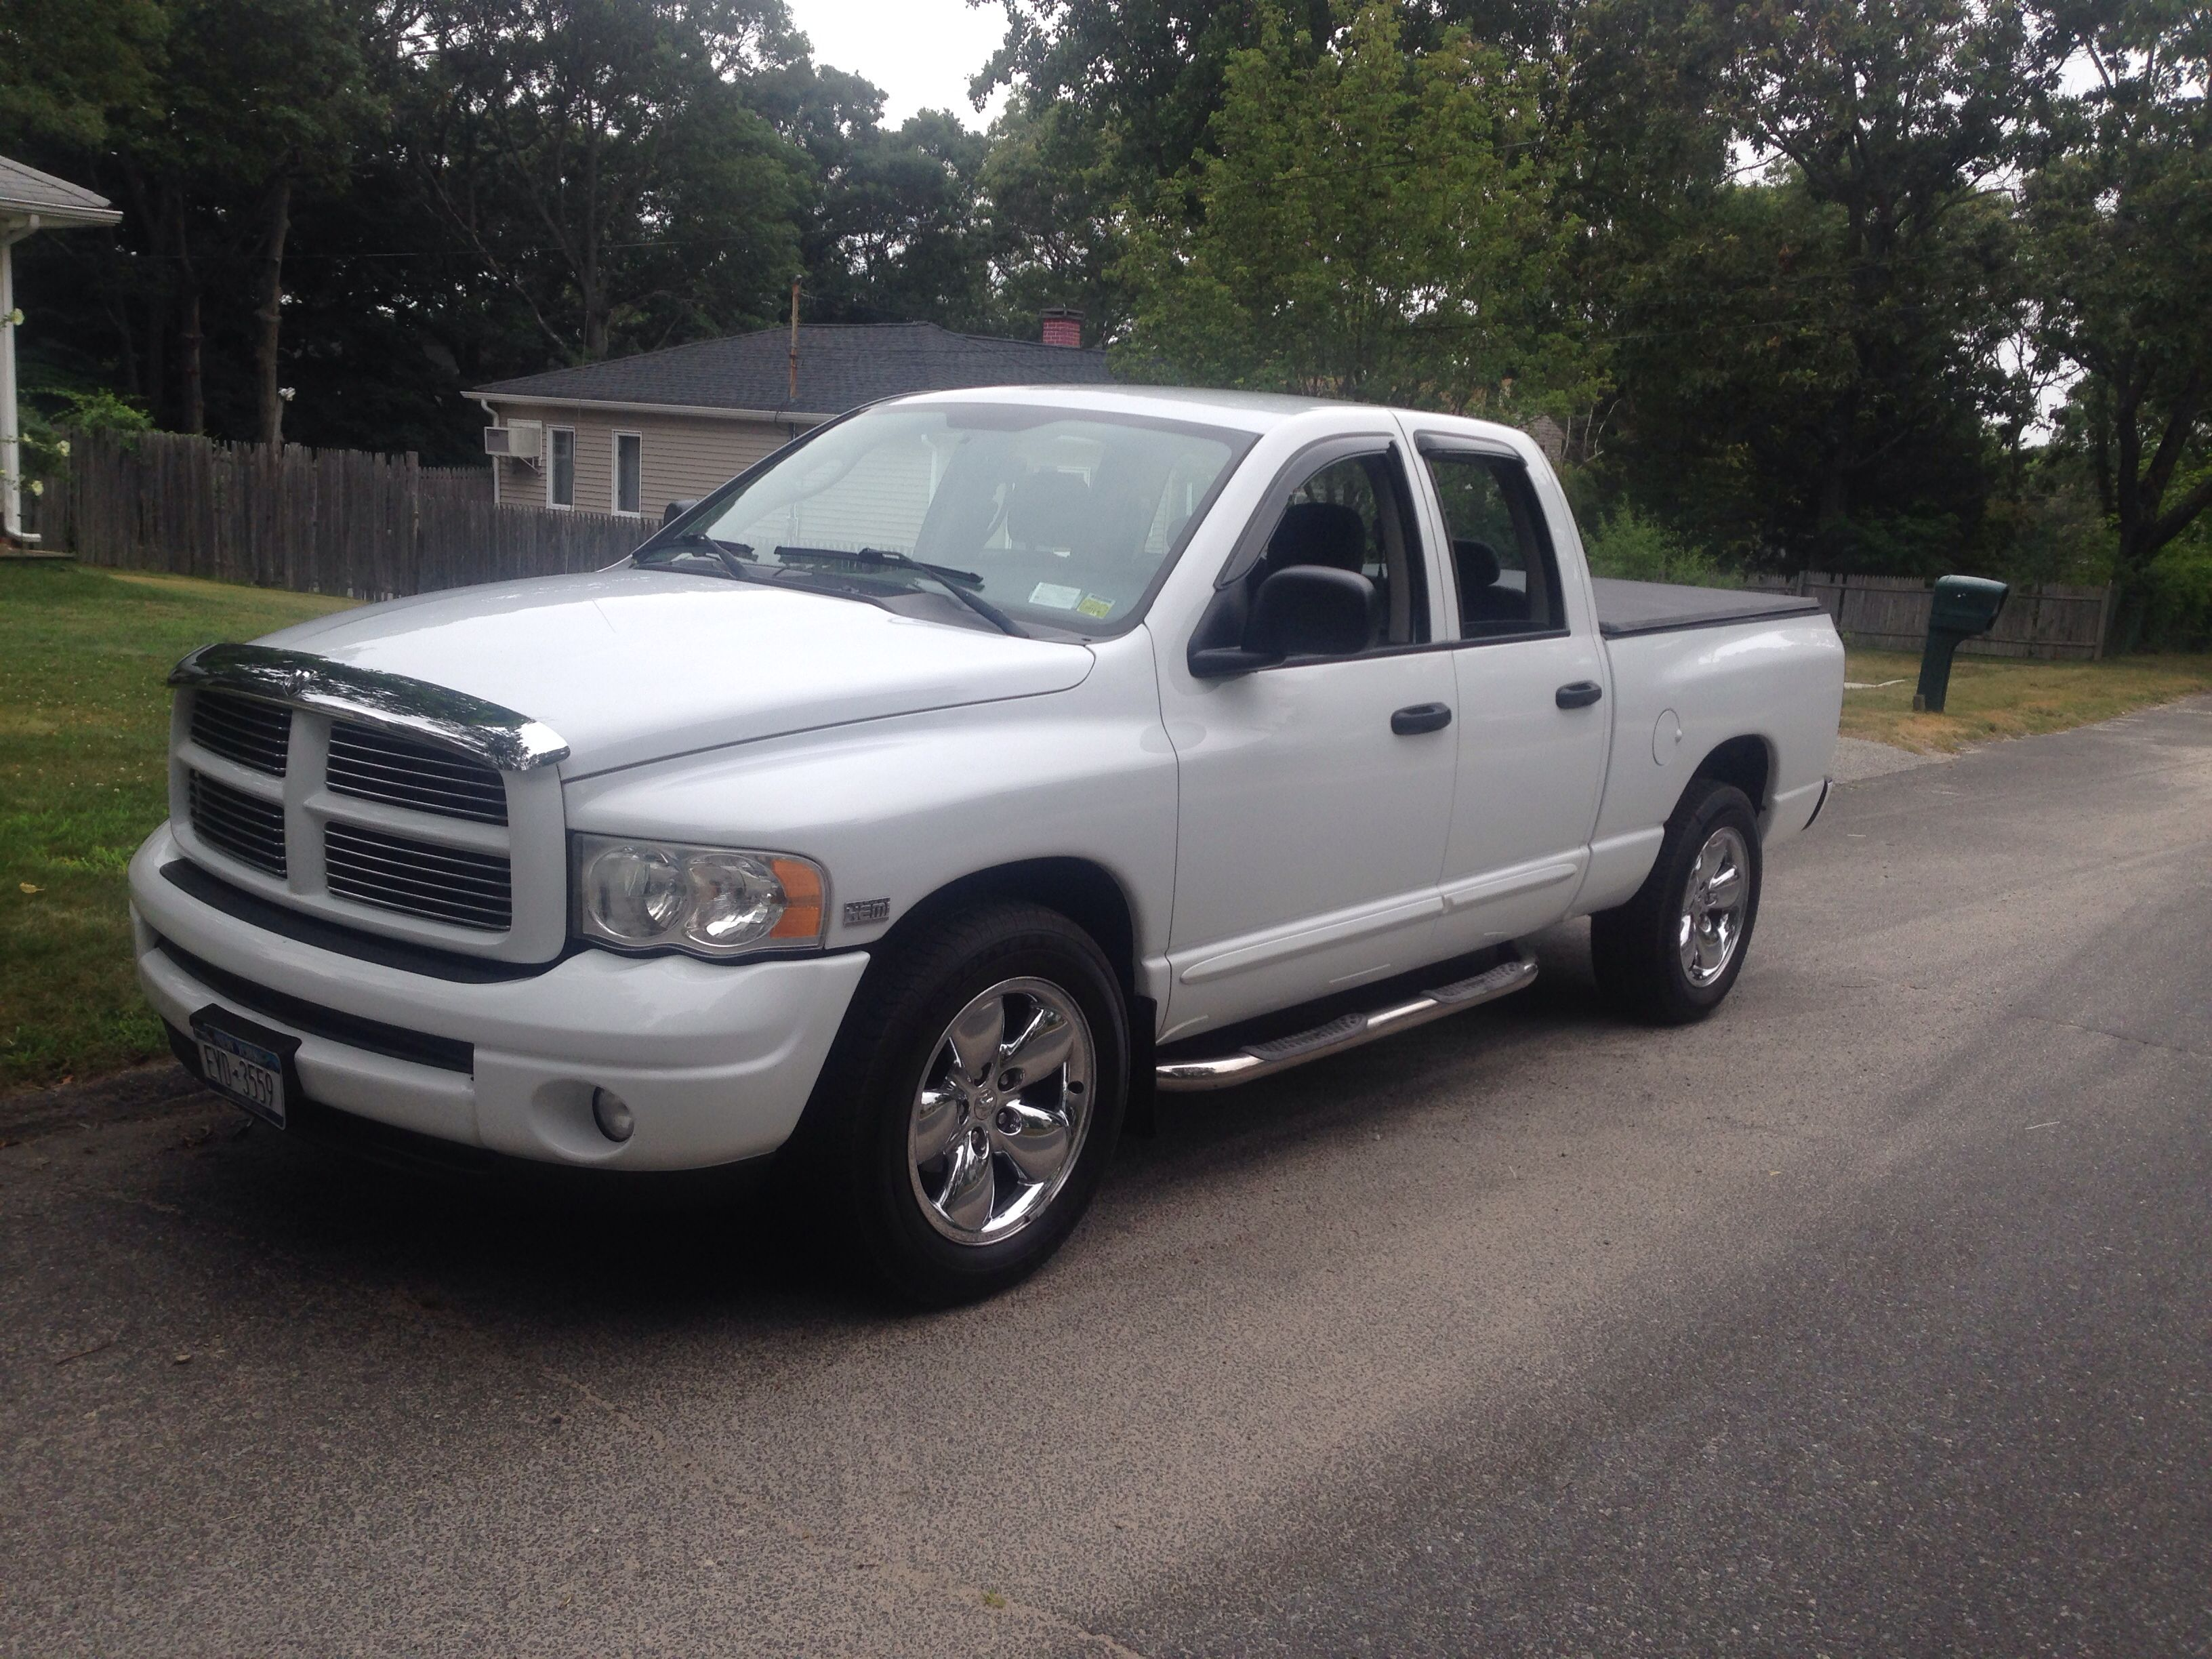 New truck New trucks, 2004 dodge ram 1500, Dodge ram 1500